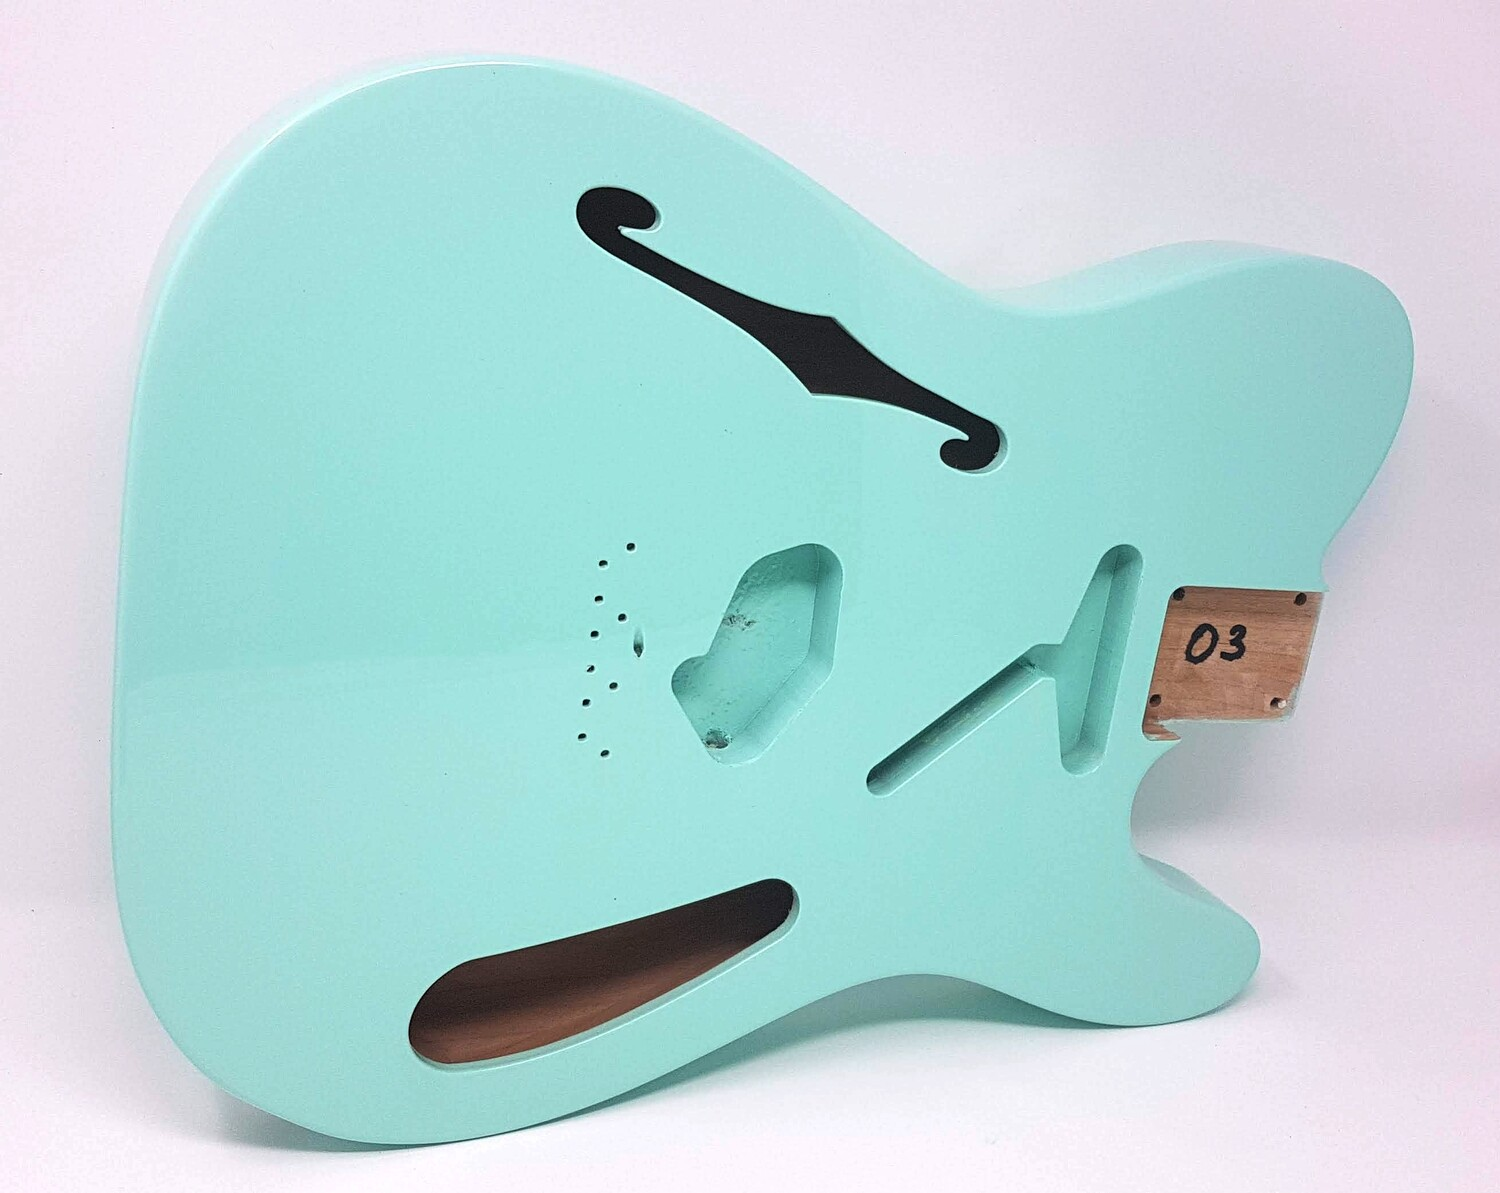 "Brio 2 piece Alder Body ""Thinline"" T-Style Seafoam Green"